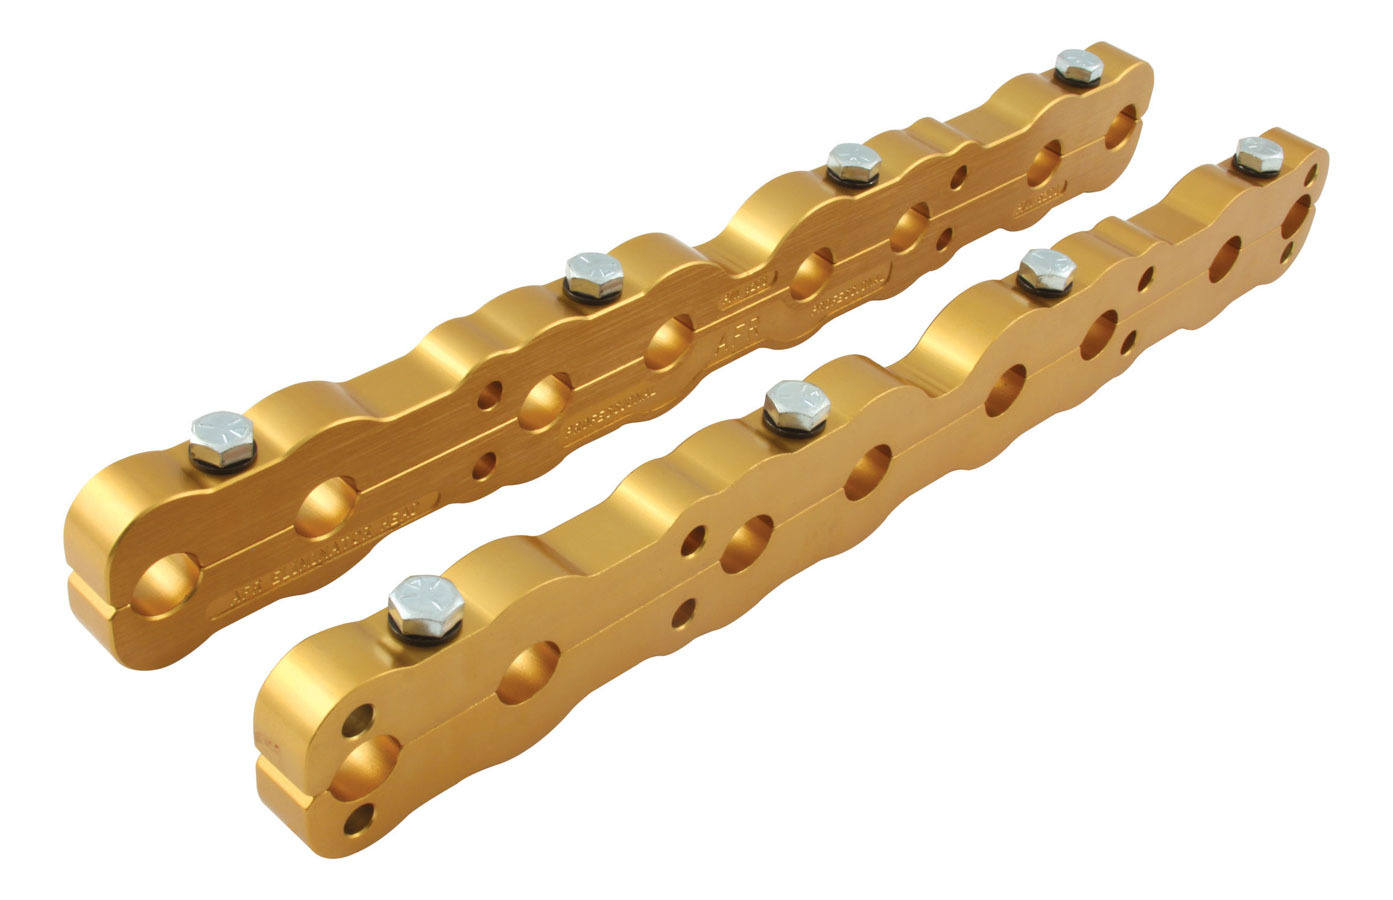 Air Flow Research 6200 Rocker Arm Stud Girdle, Standard, Aluminum, Gold Anodized, AFR Eliminator Heads, Small Block Chevy, Pair